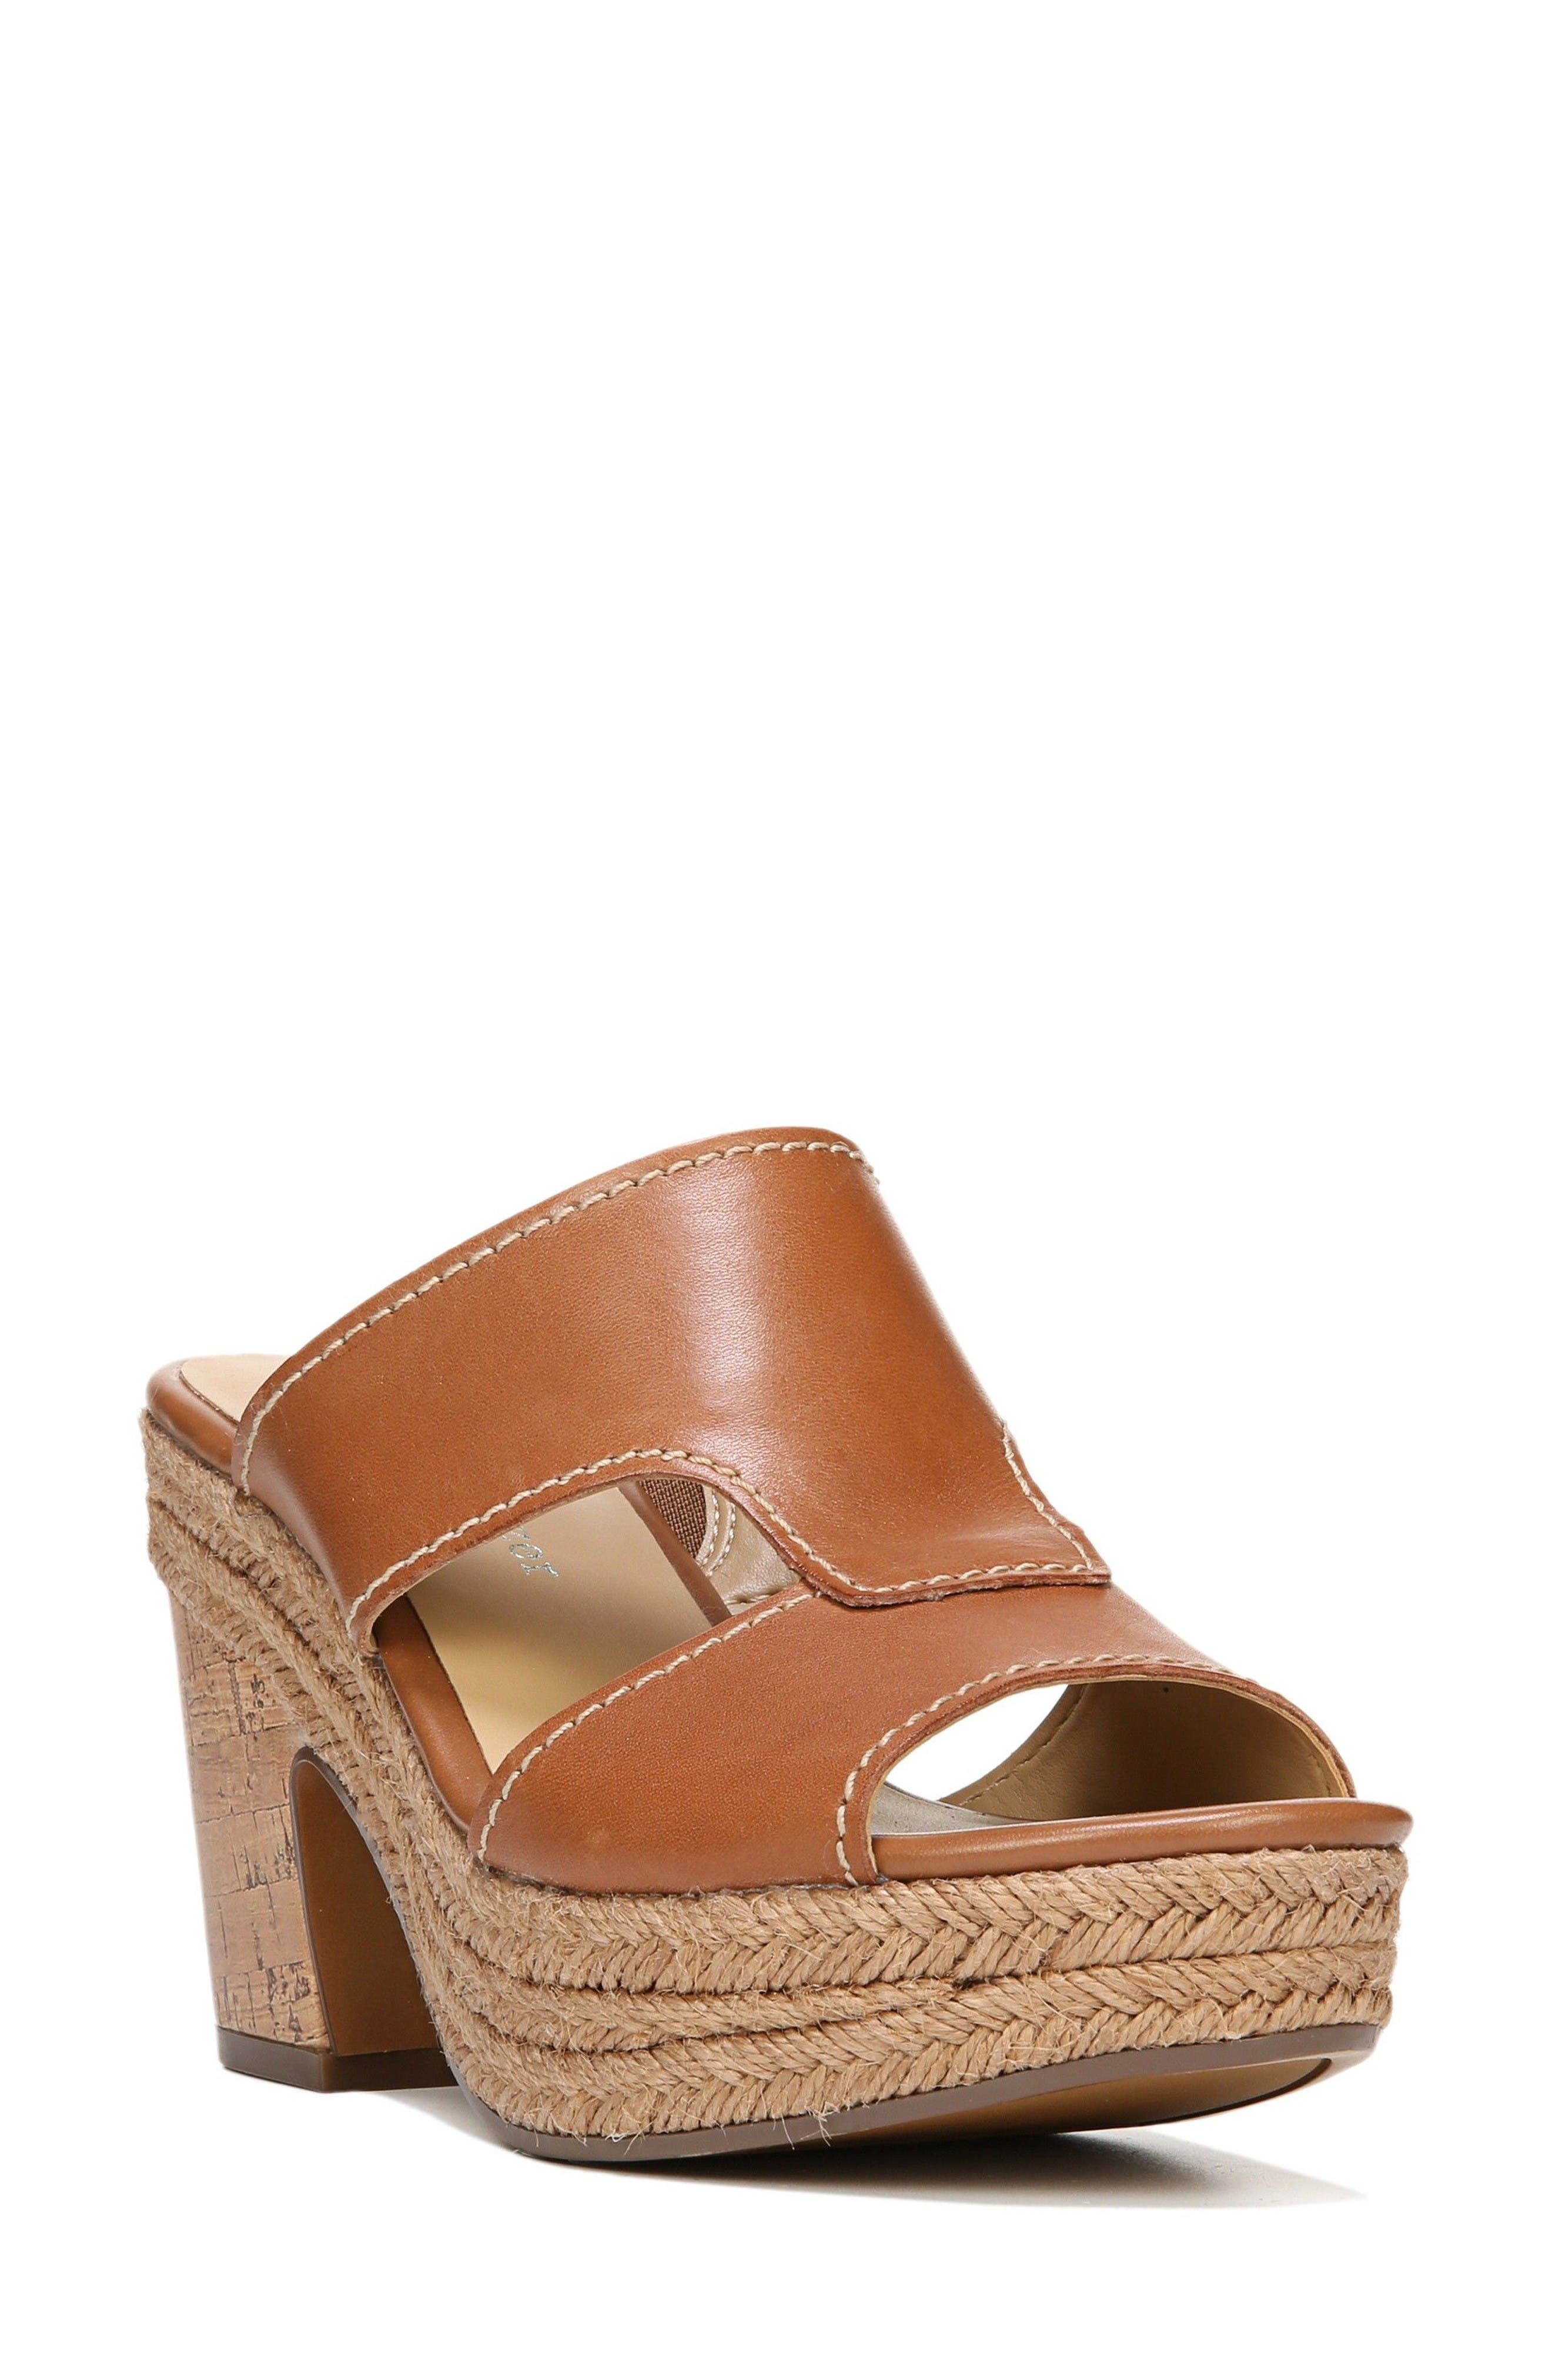 Main Image - Naturalizer Evette Sandal (Women)